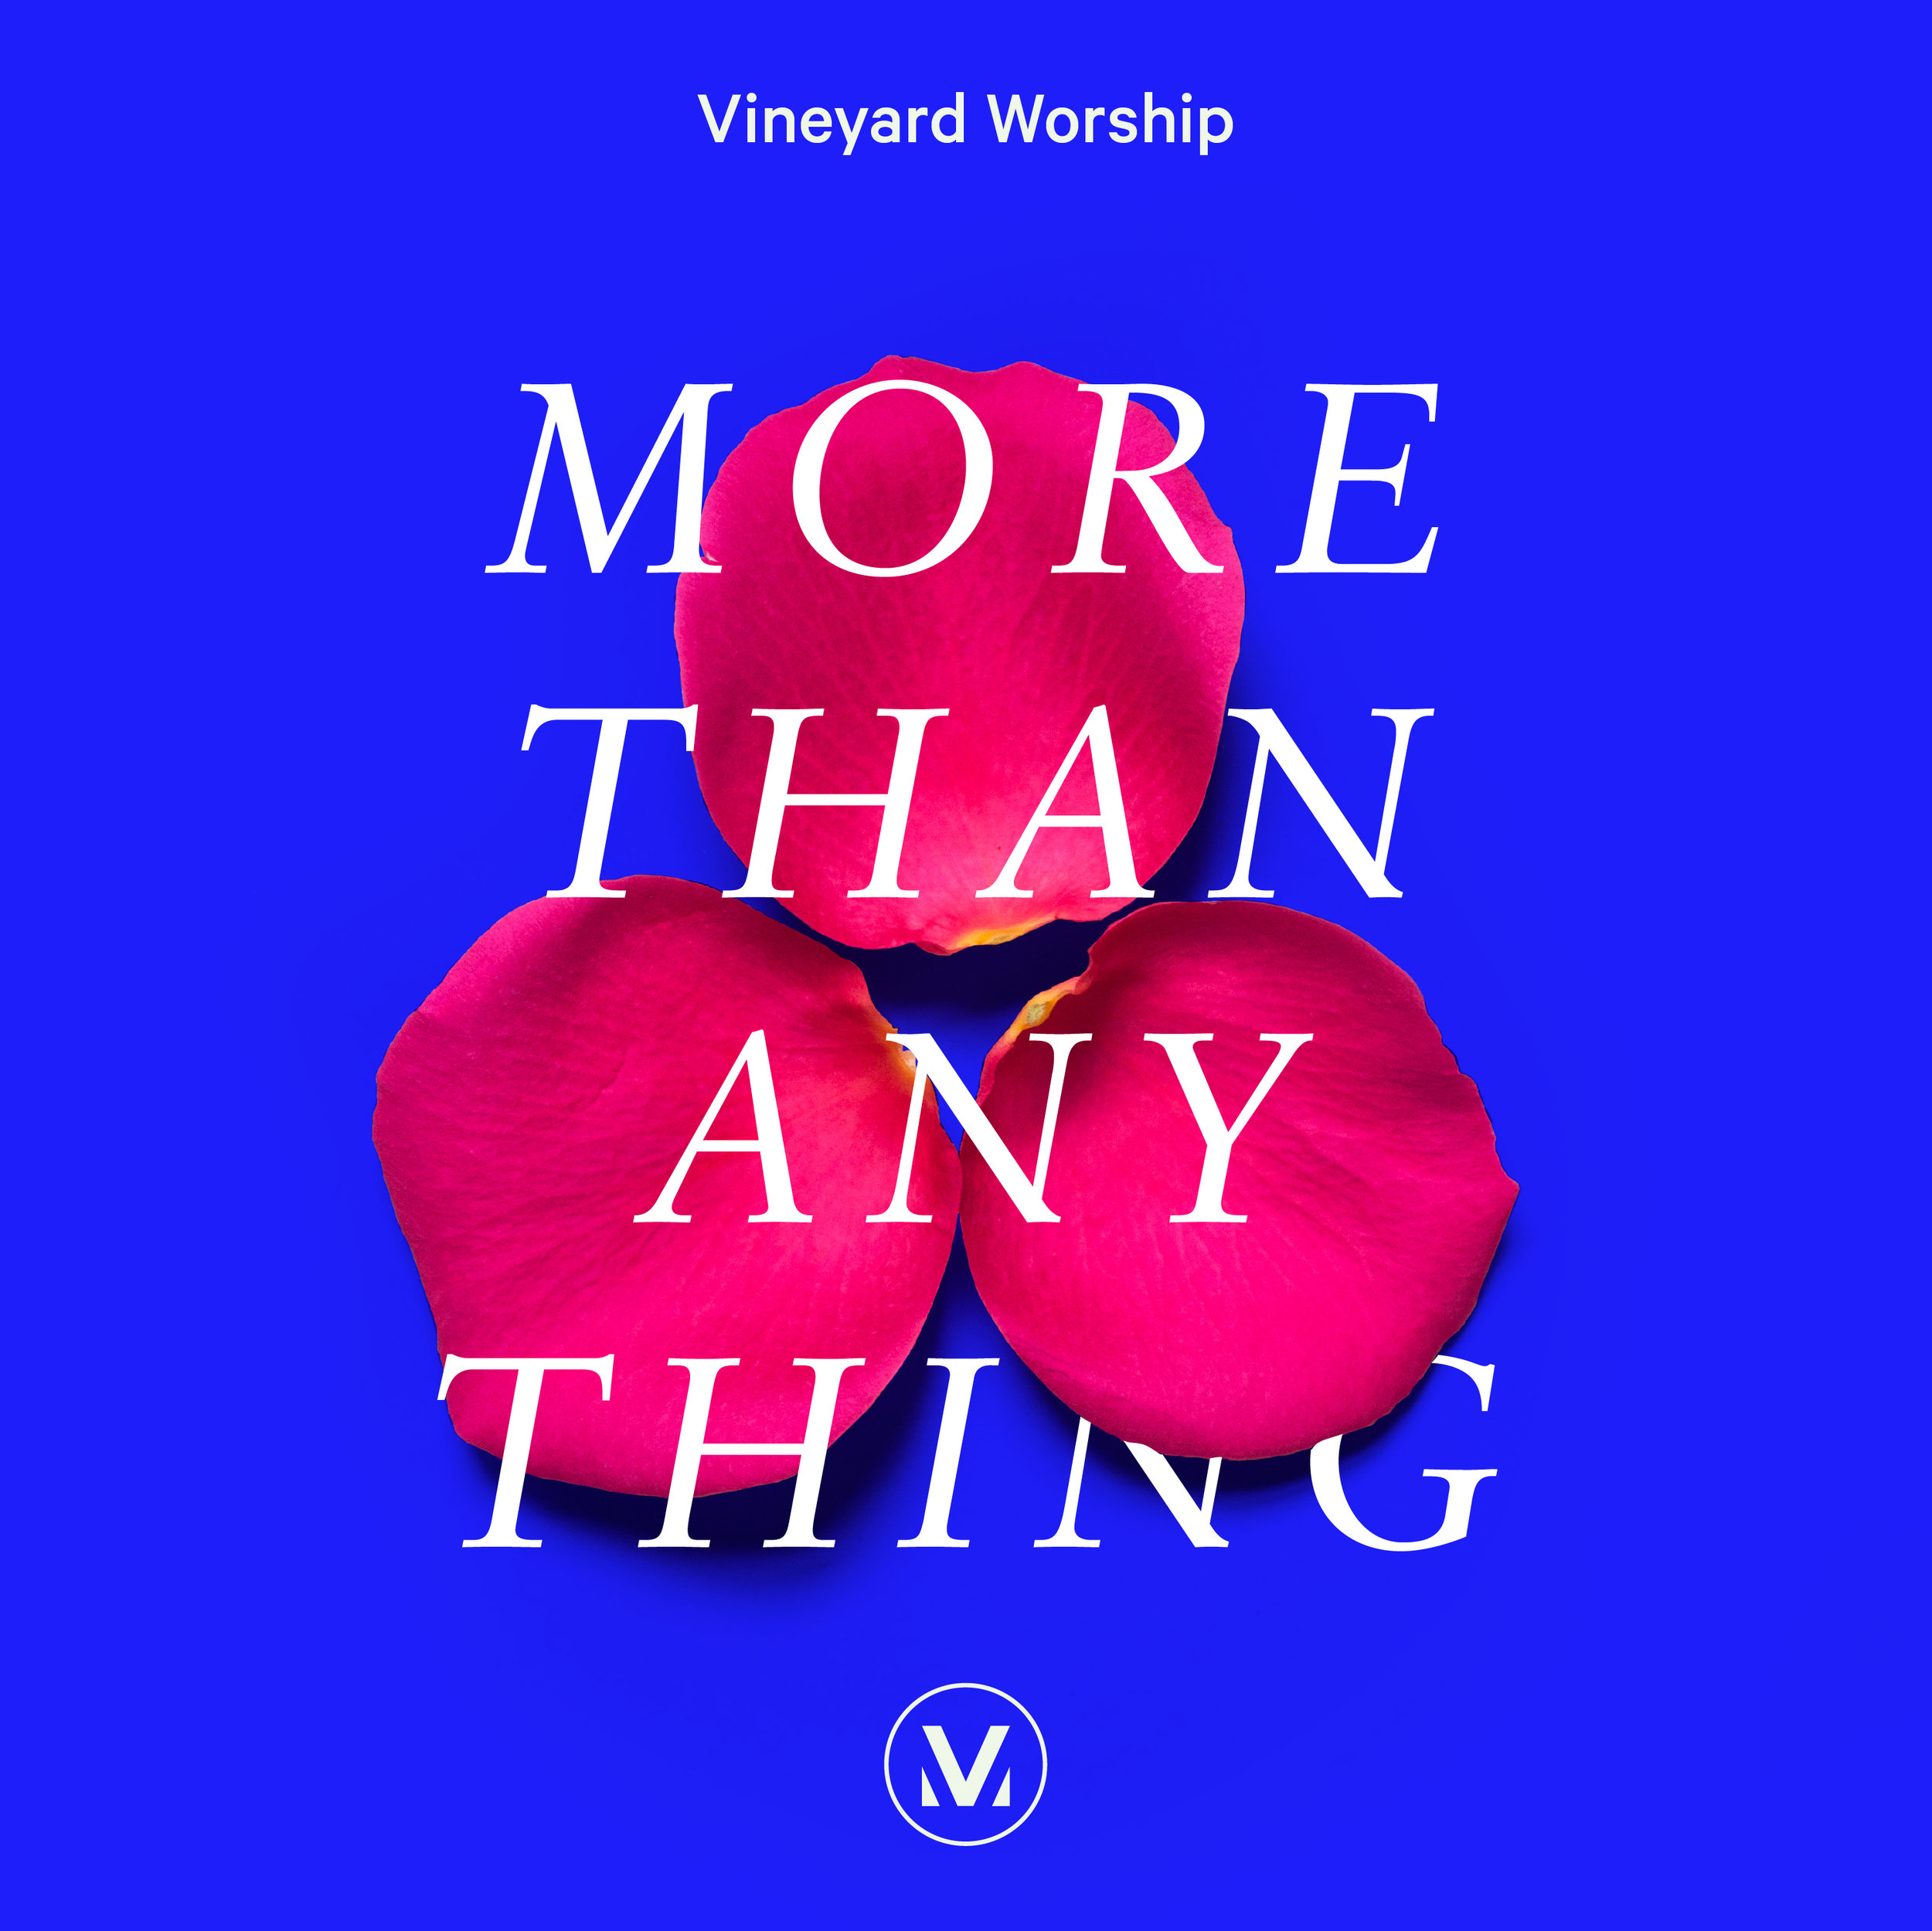 MoreThanAnything-Vineyard.jpg